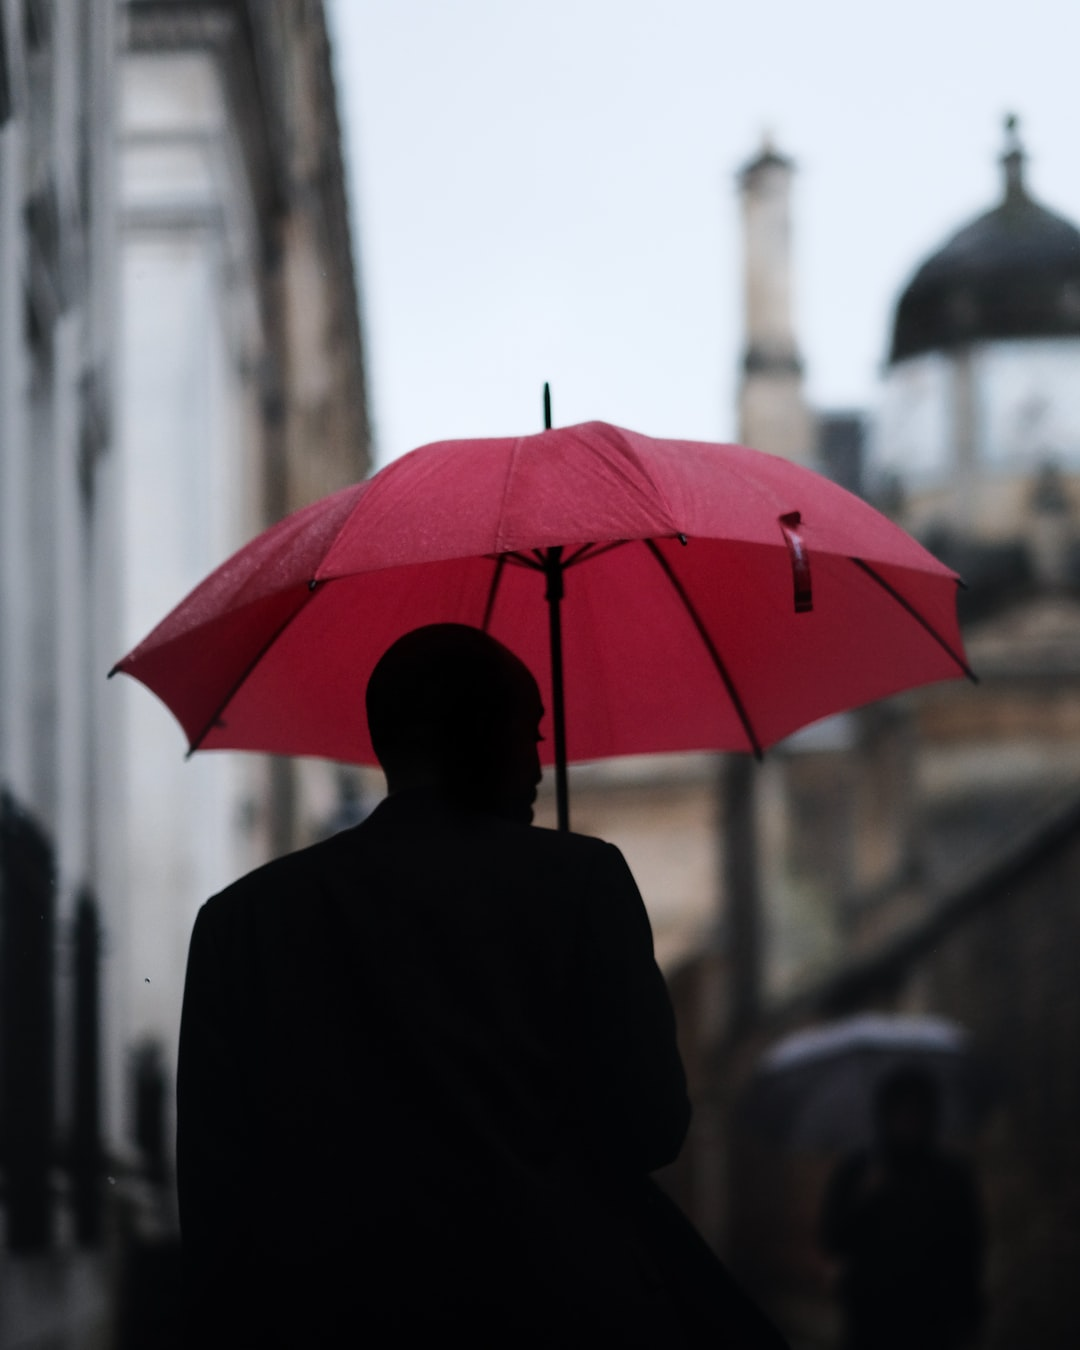 a man with a red umbrella disappears down senate house passage in cambridge uk